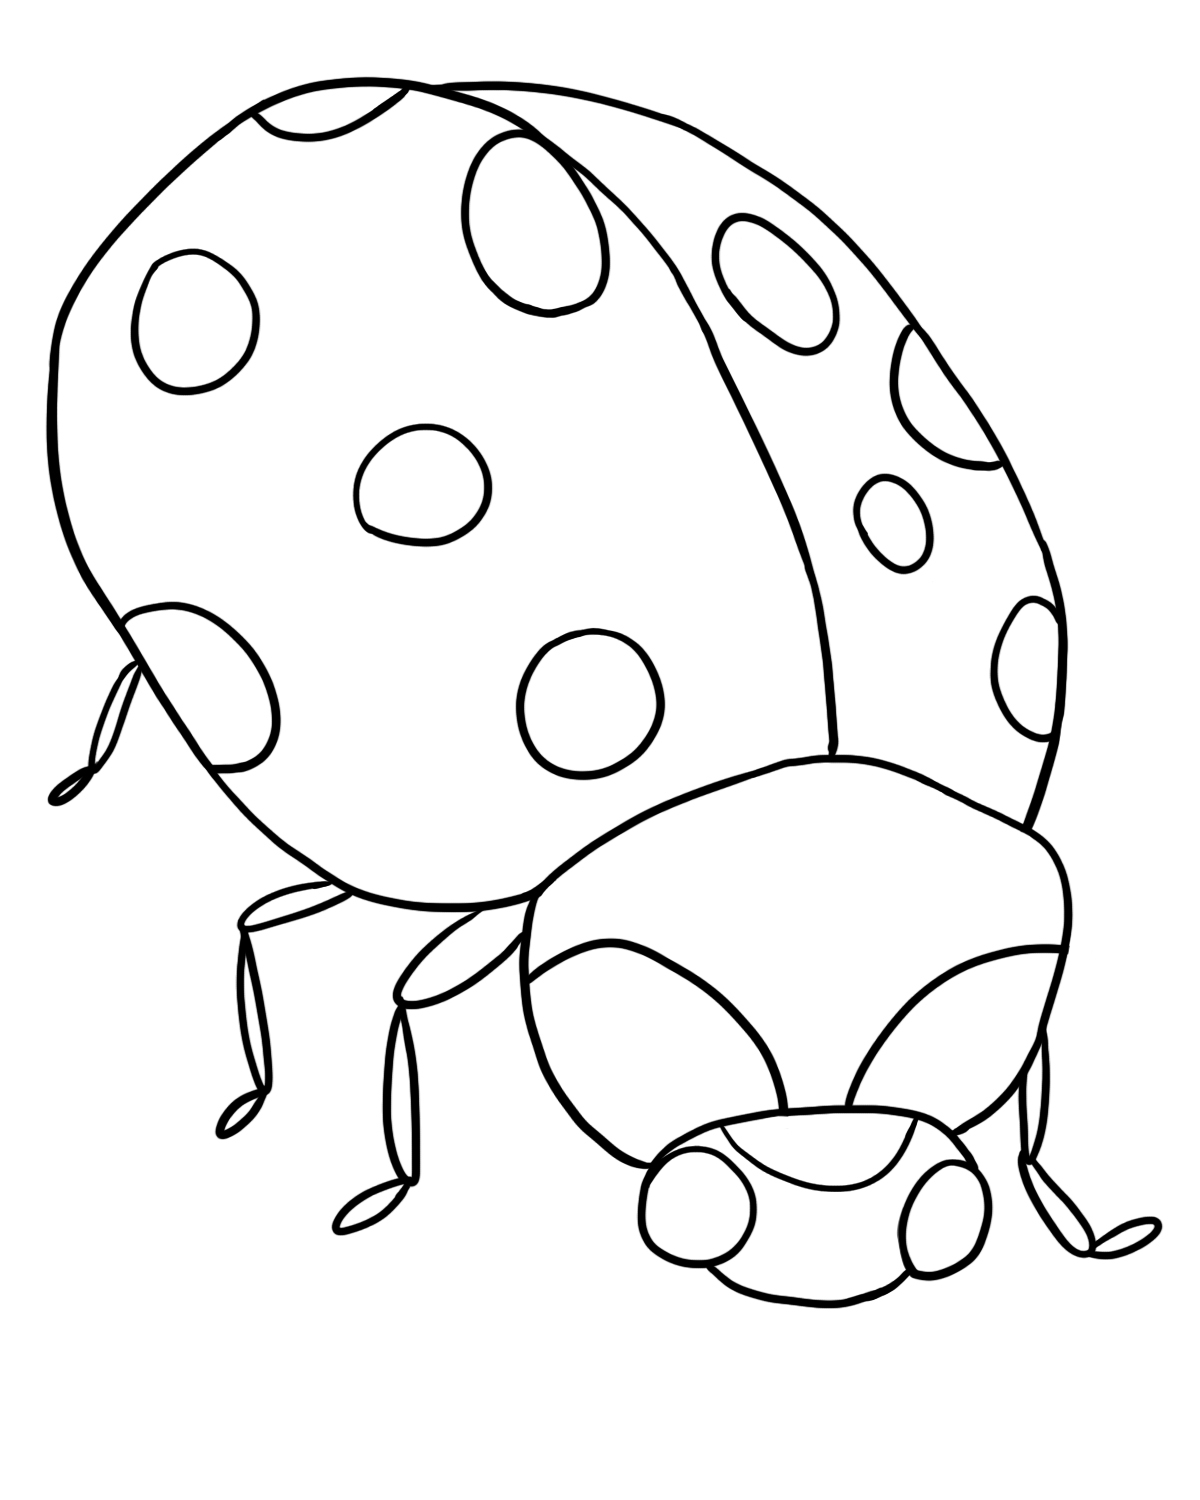 lady bug coloring page ladybug coloring pages birthday printable lady coloring bug page